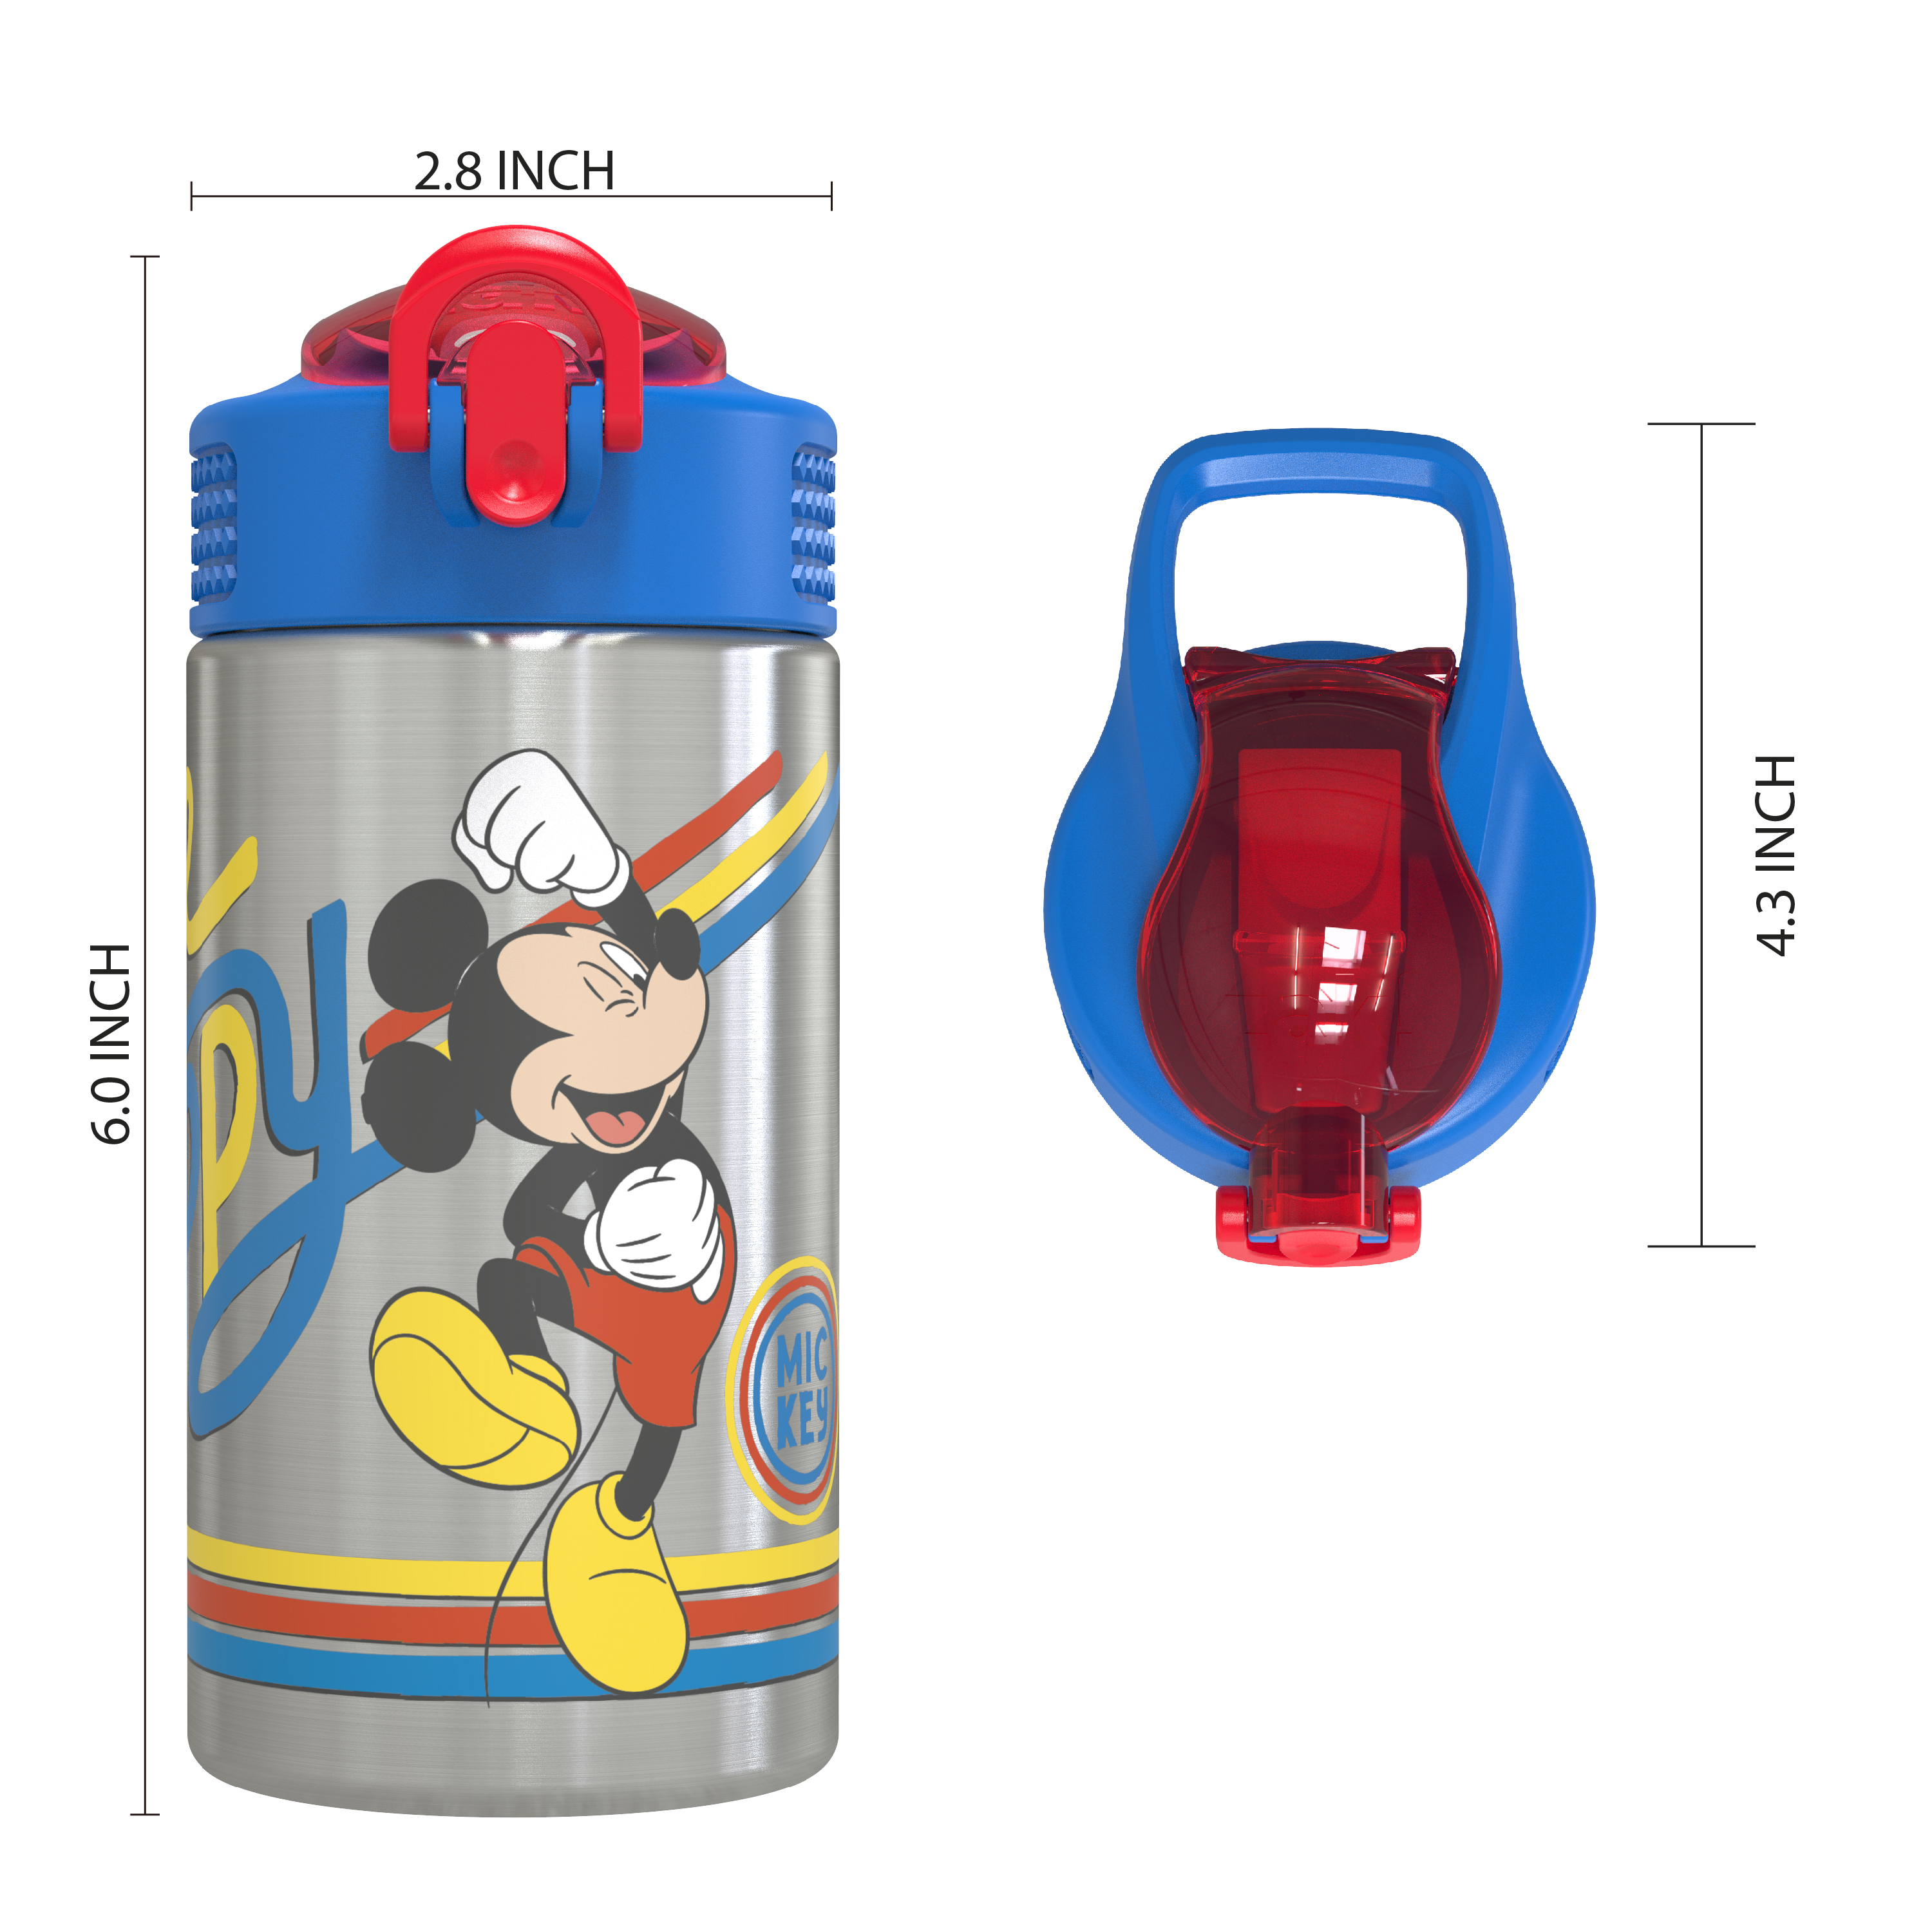 Disney 15.5 ounce Stainless Steel Water Bottle with Built-in Carrying Loop, Mickey Mouse slideshow image 5